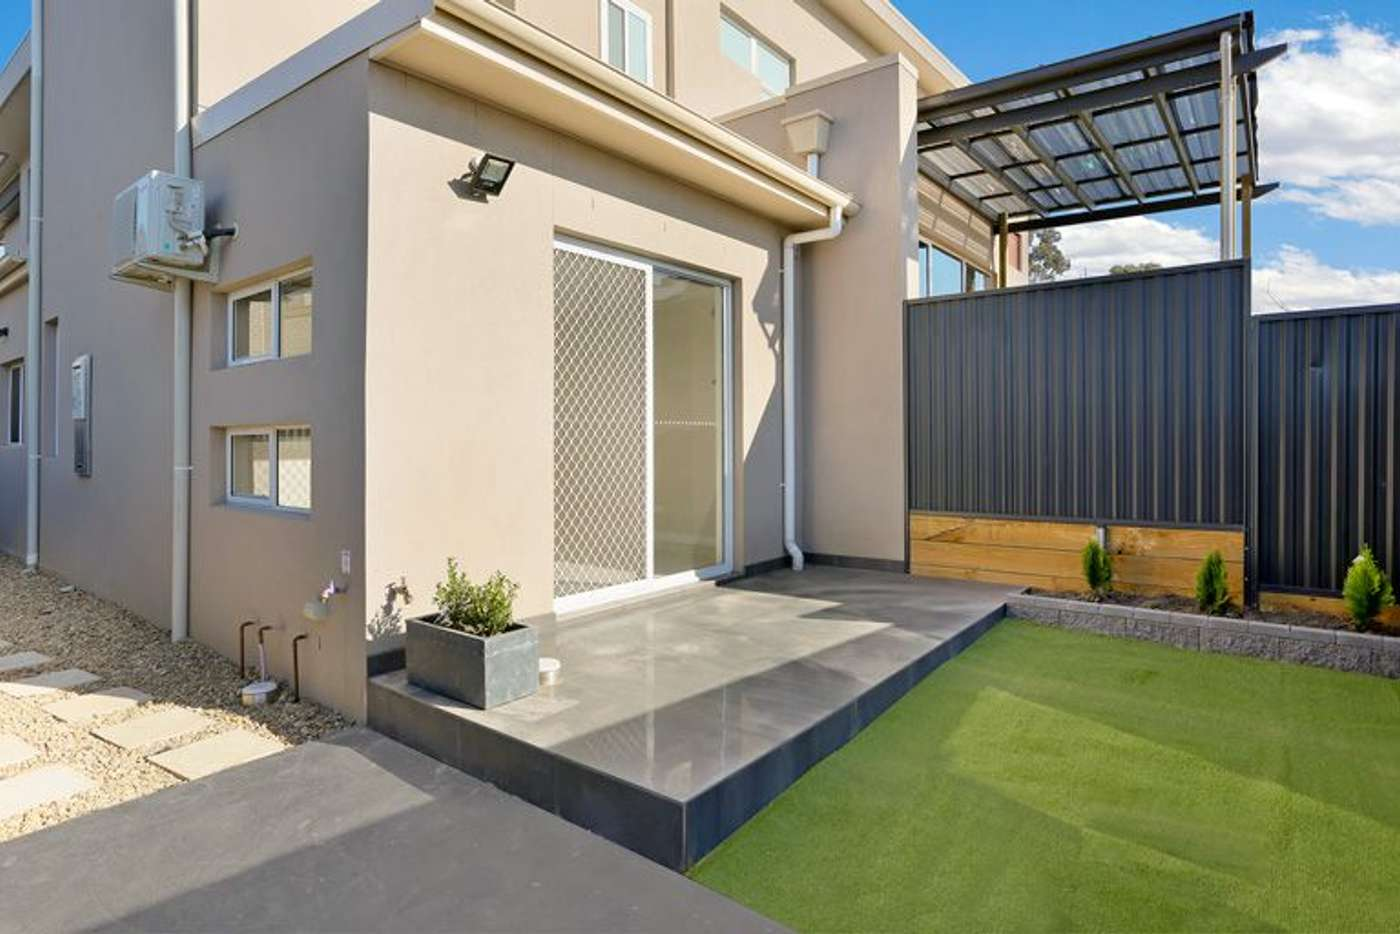 Main view of Homely house listing, 42A Thomas Boulton Circuit, Kellyville NSW 2155